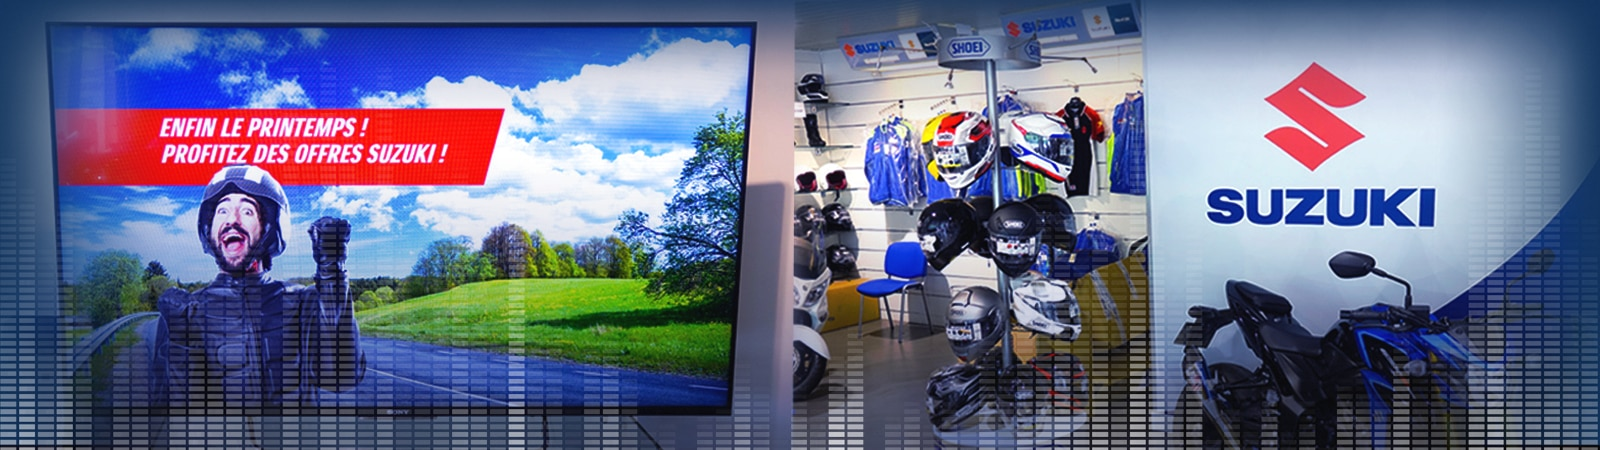 Banner image showing the interior of the Suzuki showroom, along with a Sony BRAVIA Professional Display being used for digital signage.